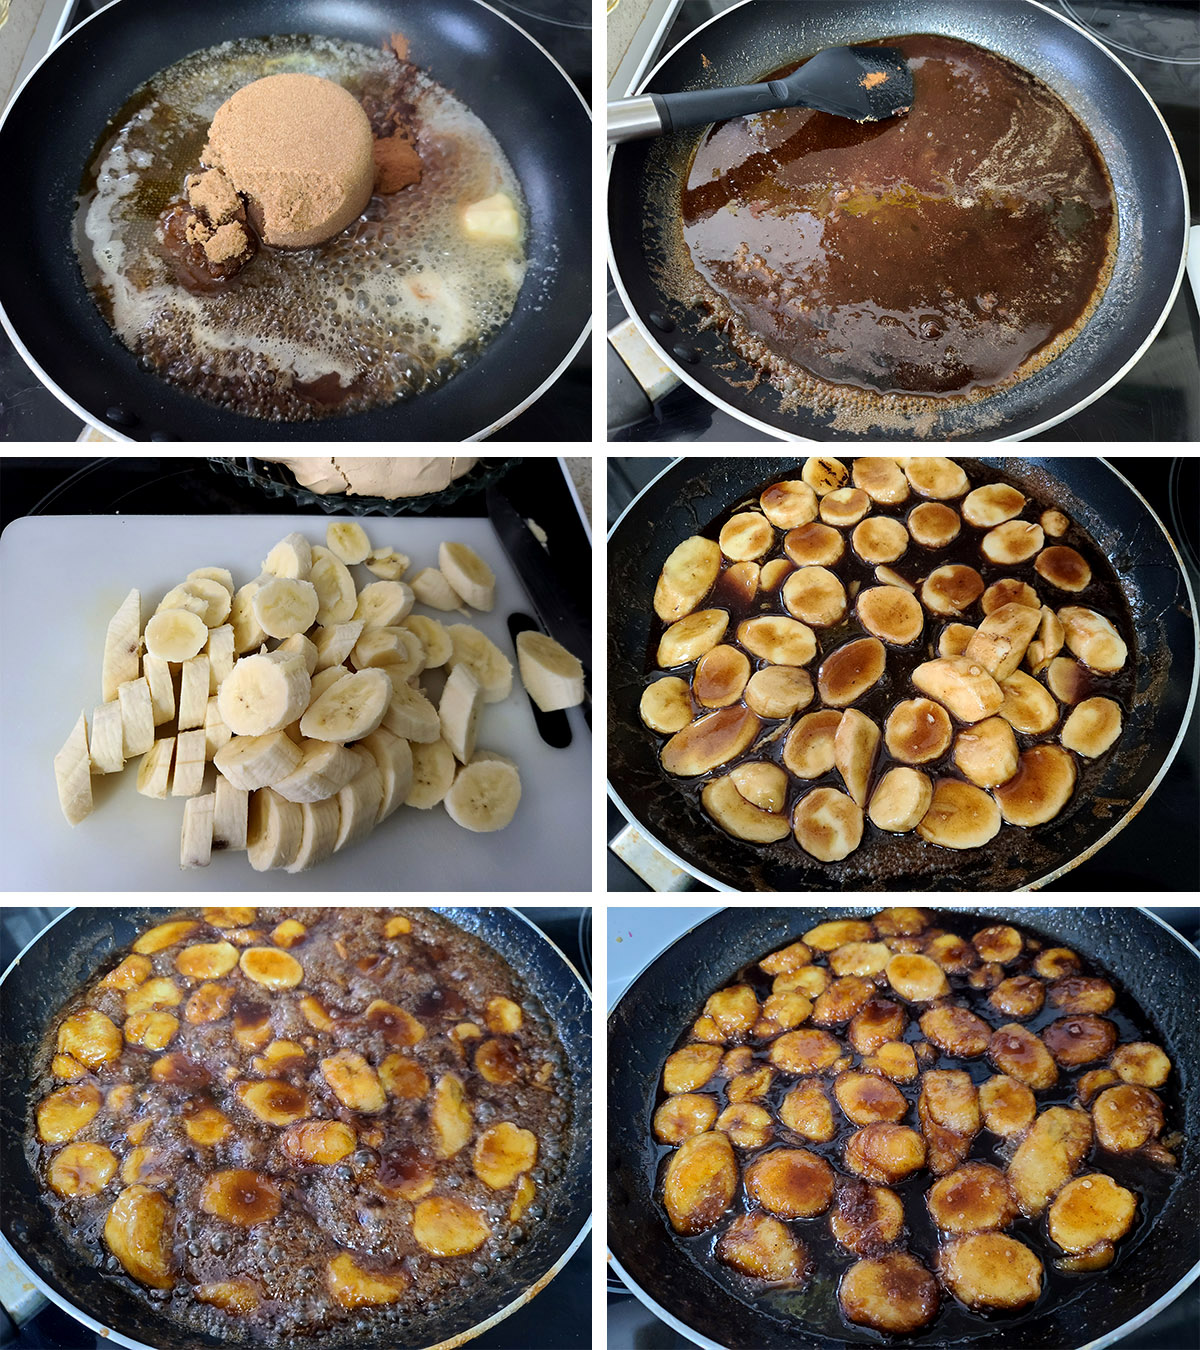 A 6 part image showing bananas foster being made in a pan, as described.